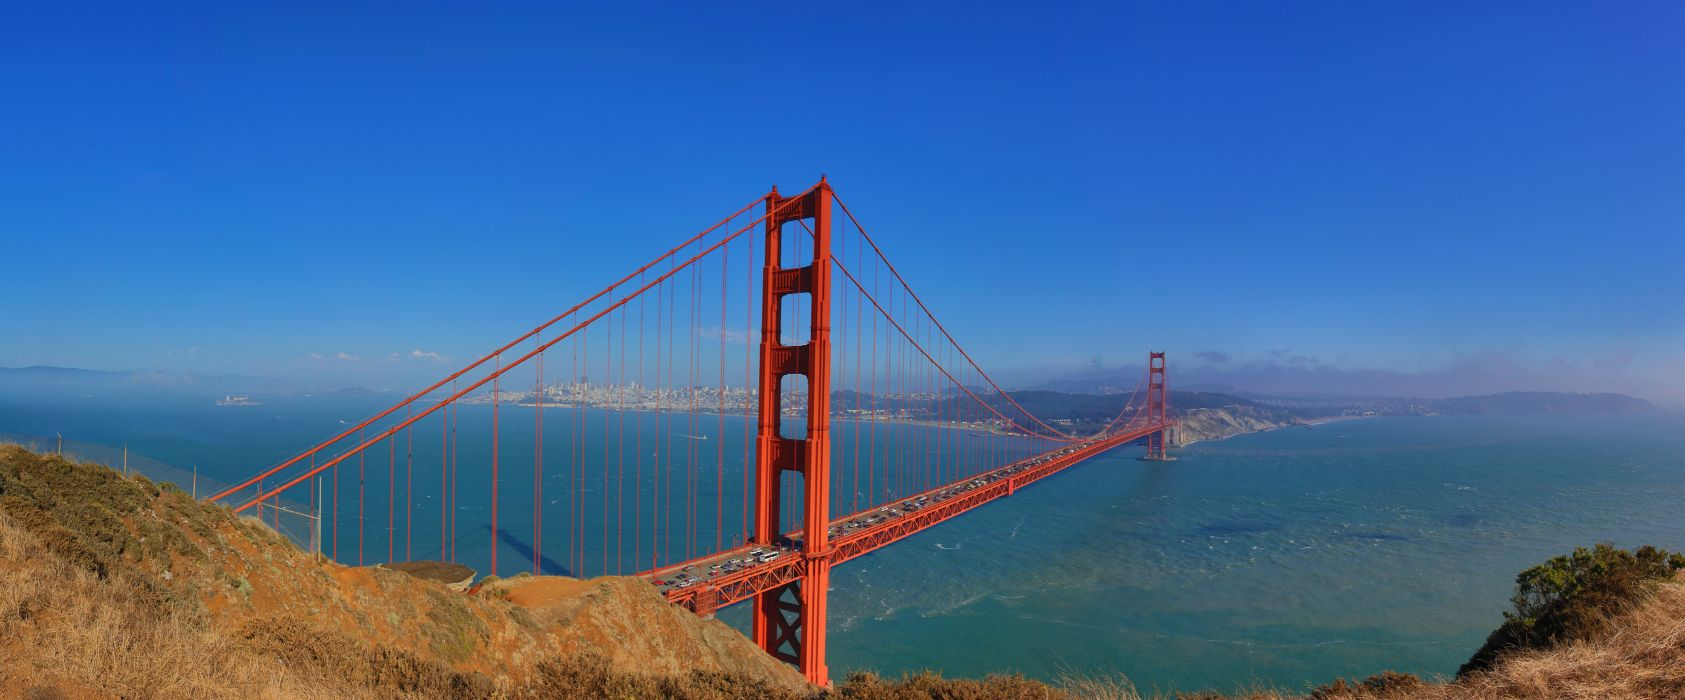 Sky Bridges USA San Francisco Golden Gate Bridge Cities wallpaper